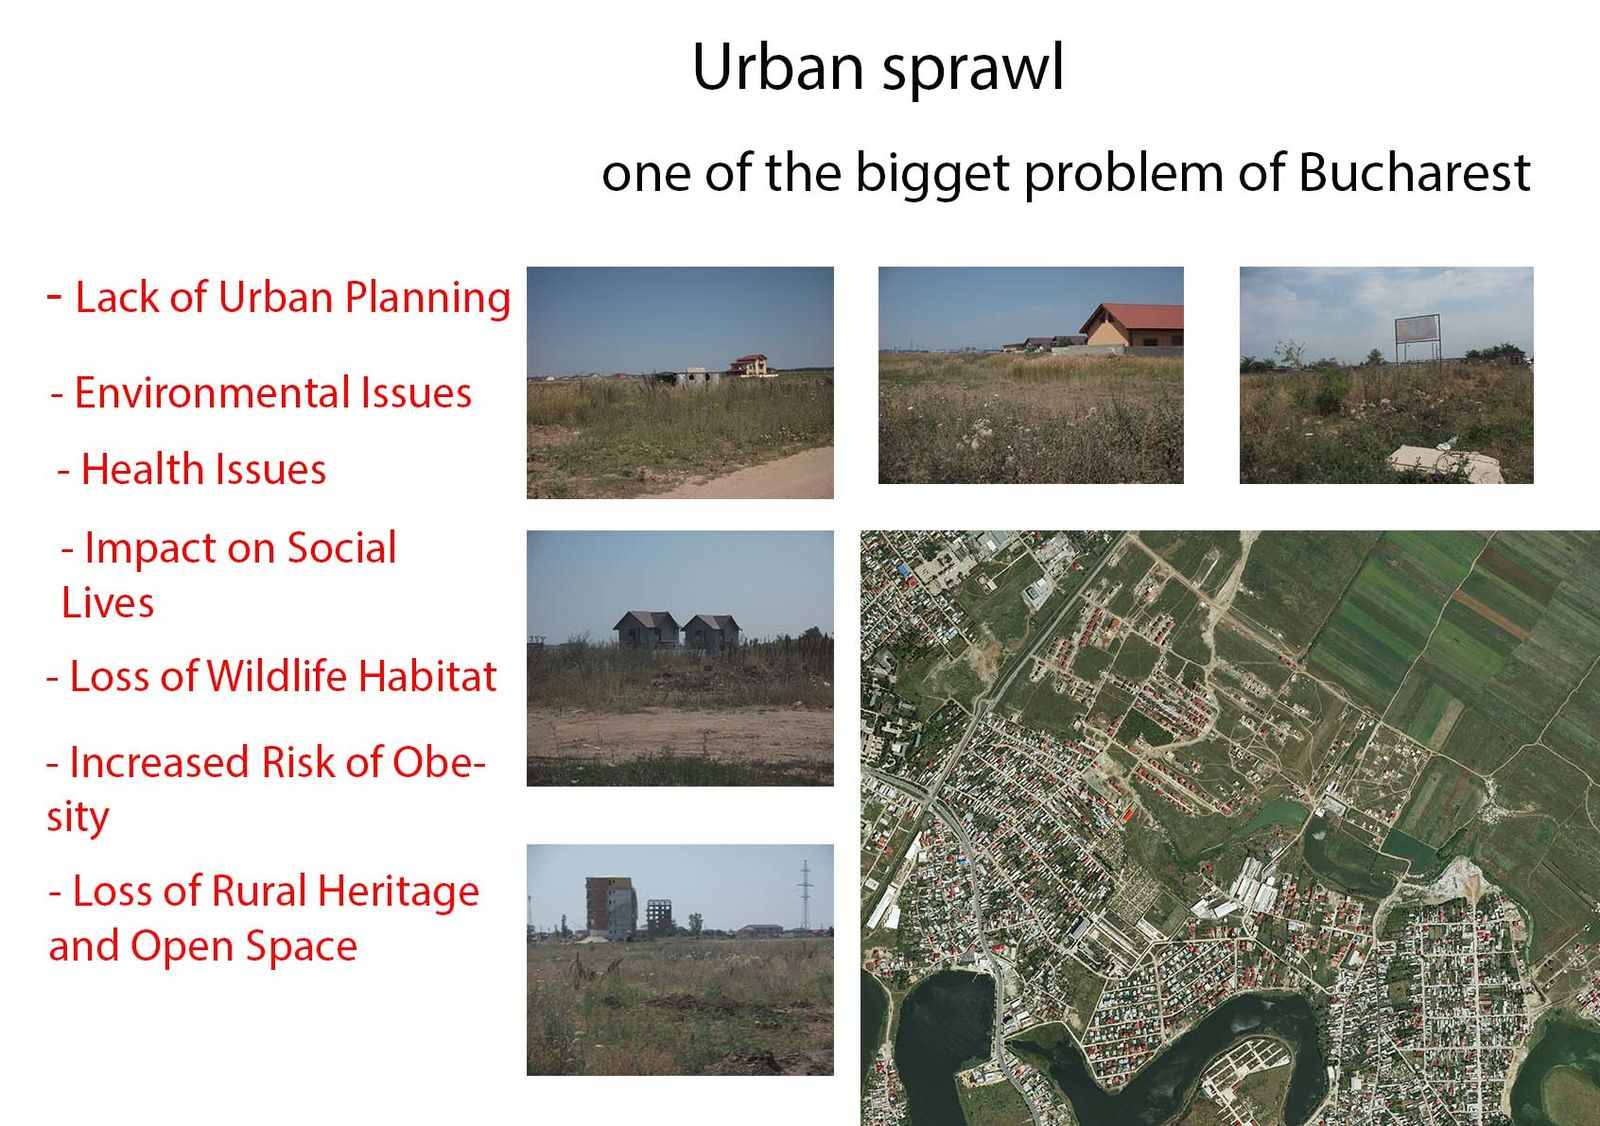 the issue of urban sprawl December 18th, 2014 urban sprawl: definitions, data, methods of measurement, and environmental consequences by reza banai and thomas depriest  full pdf: banai & depriest jse vol 7 dec 2014.